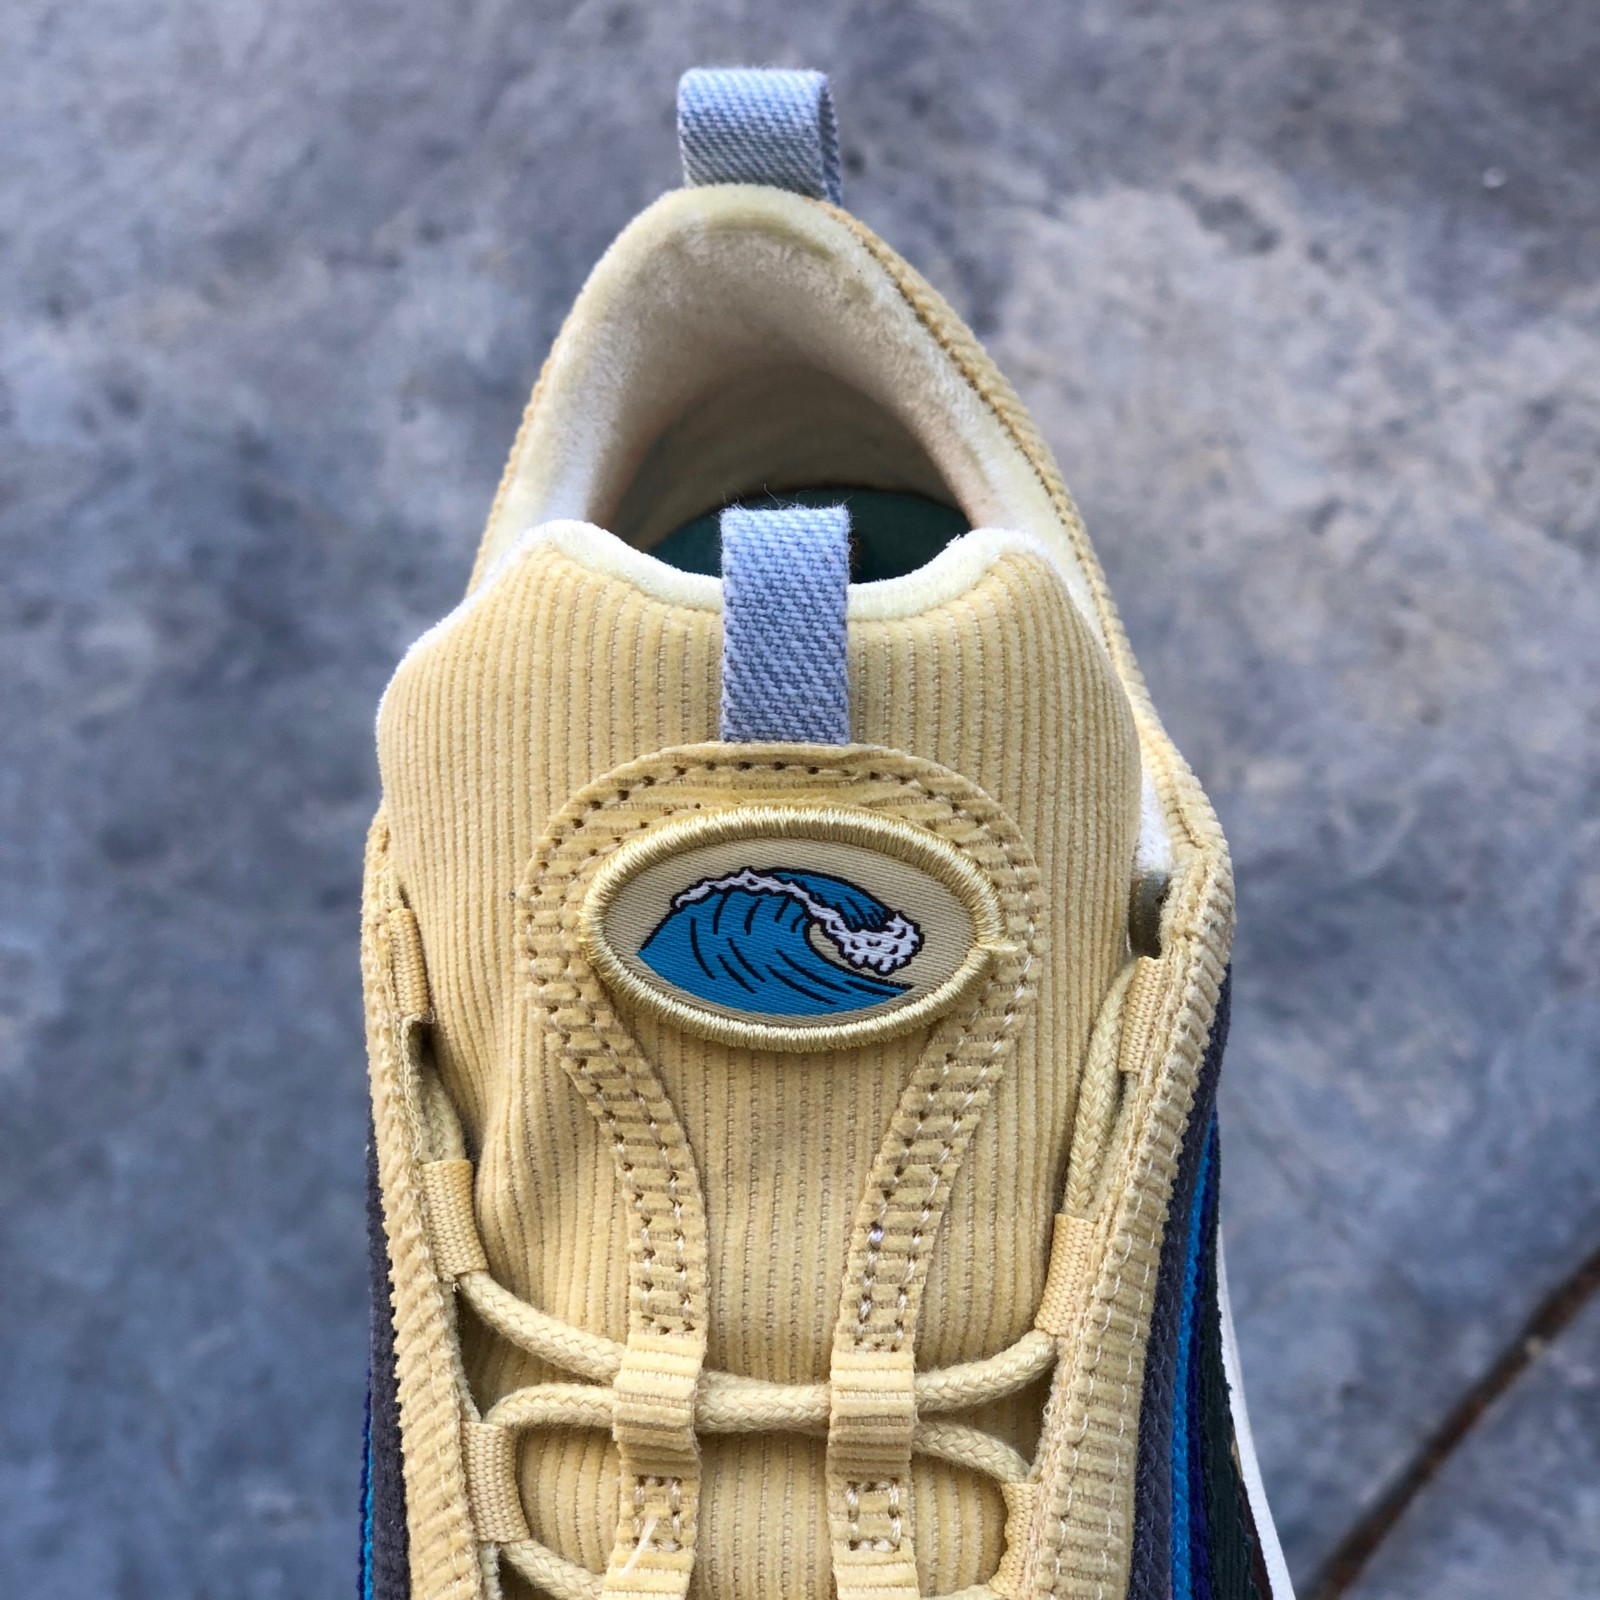 newest 0d66a 1e97f The velcro tongue tab of the shoe is colored in yellow and also made with  corduroy. The photo shows the iconic Air Max 97 s hidden lace system and the  ...